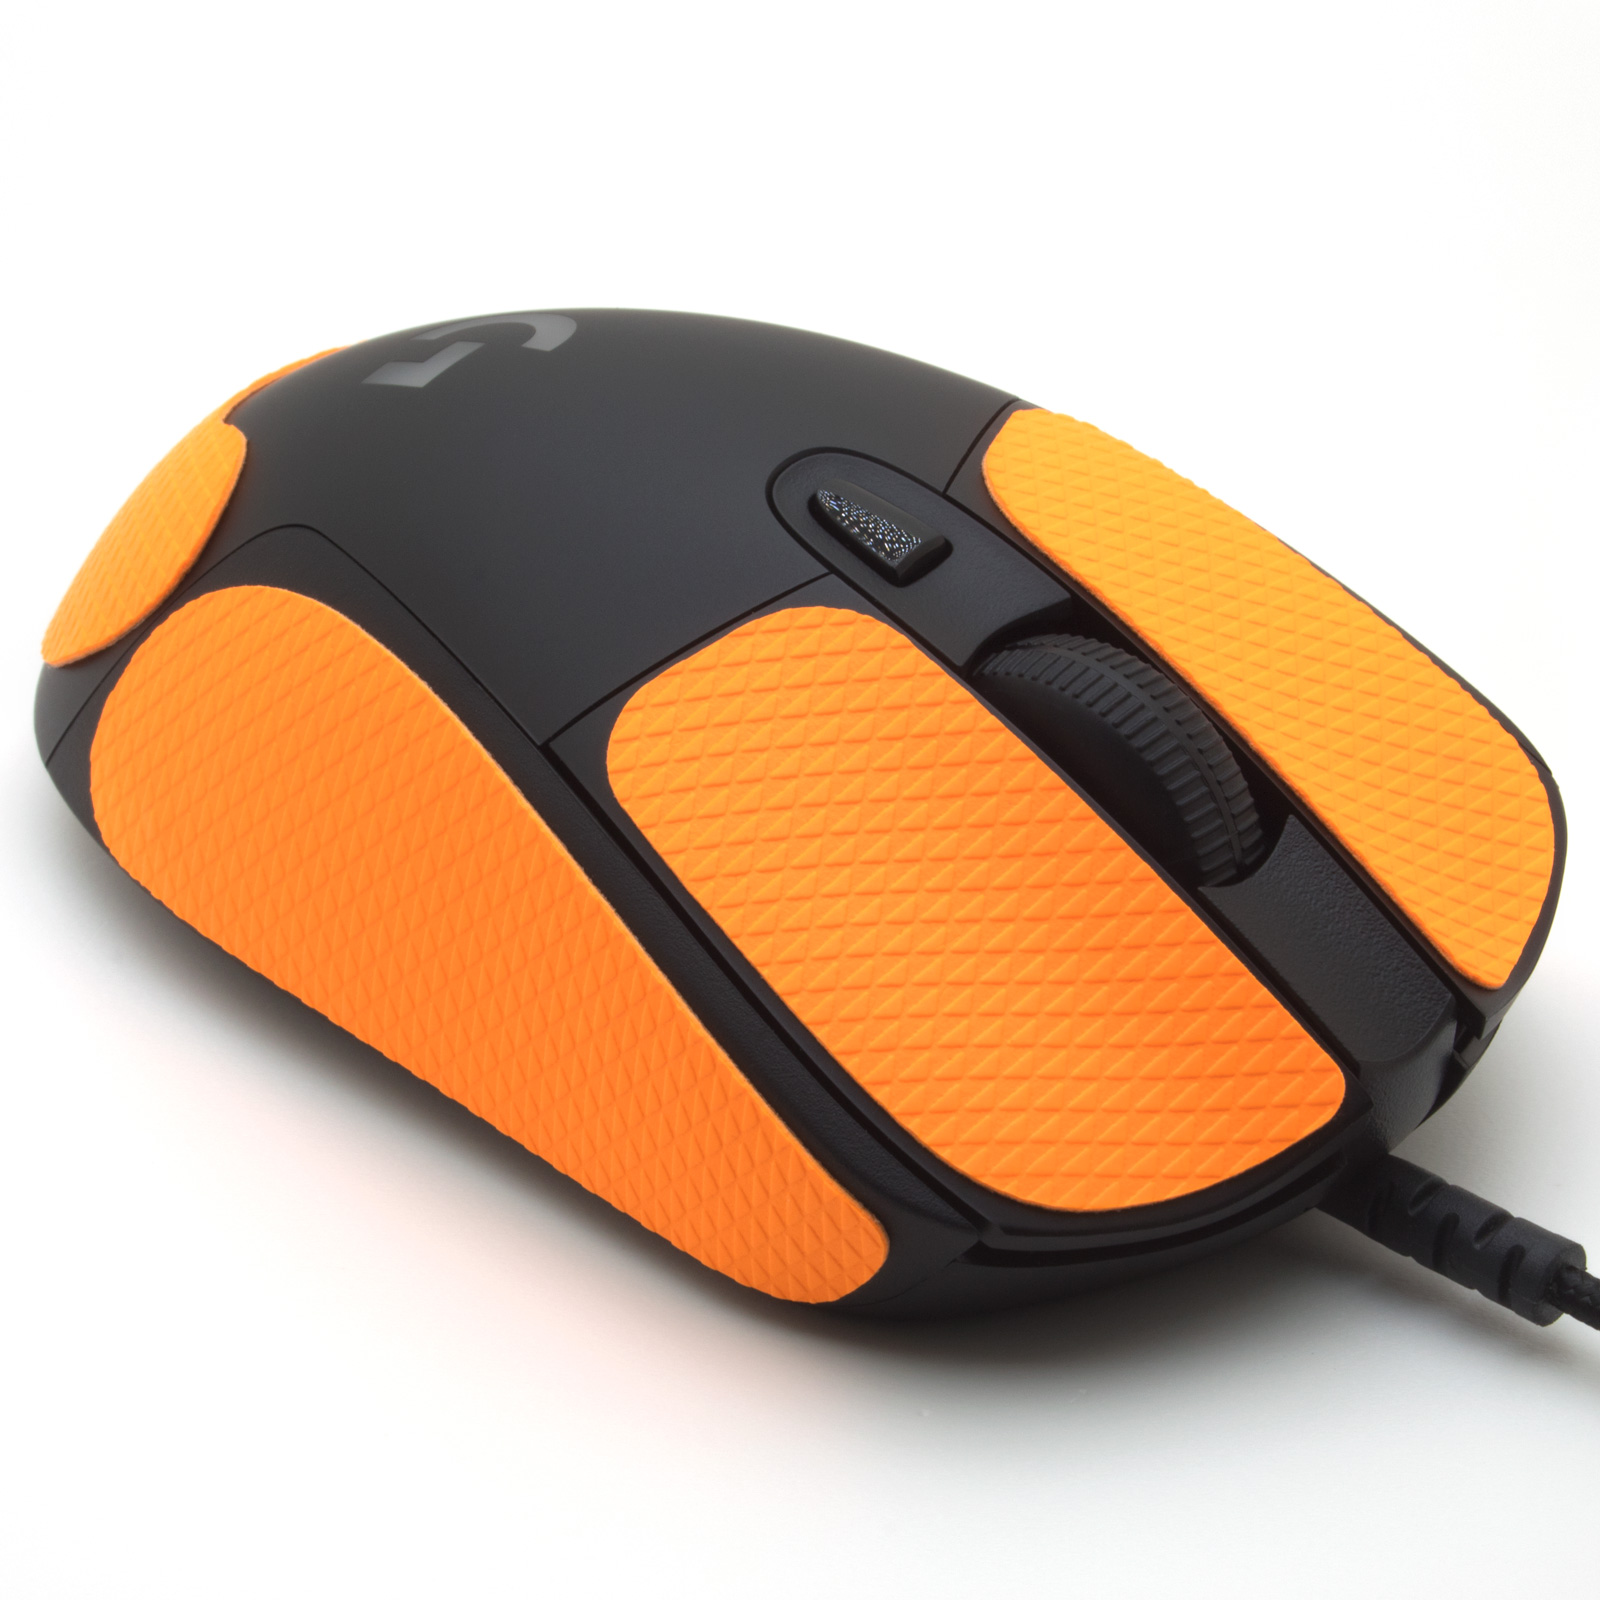 Mouse grip tape for Logitech G403 from the brand TrueGrip - front right view